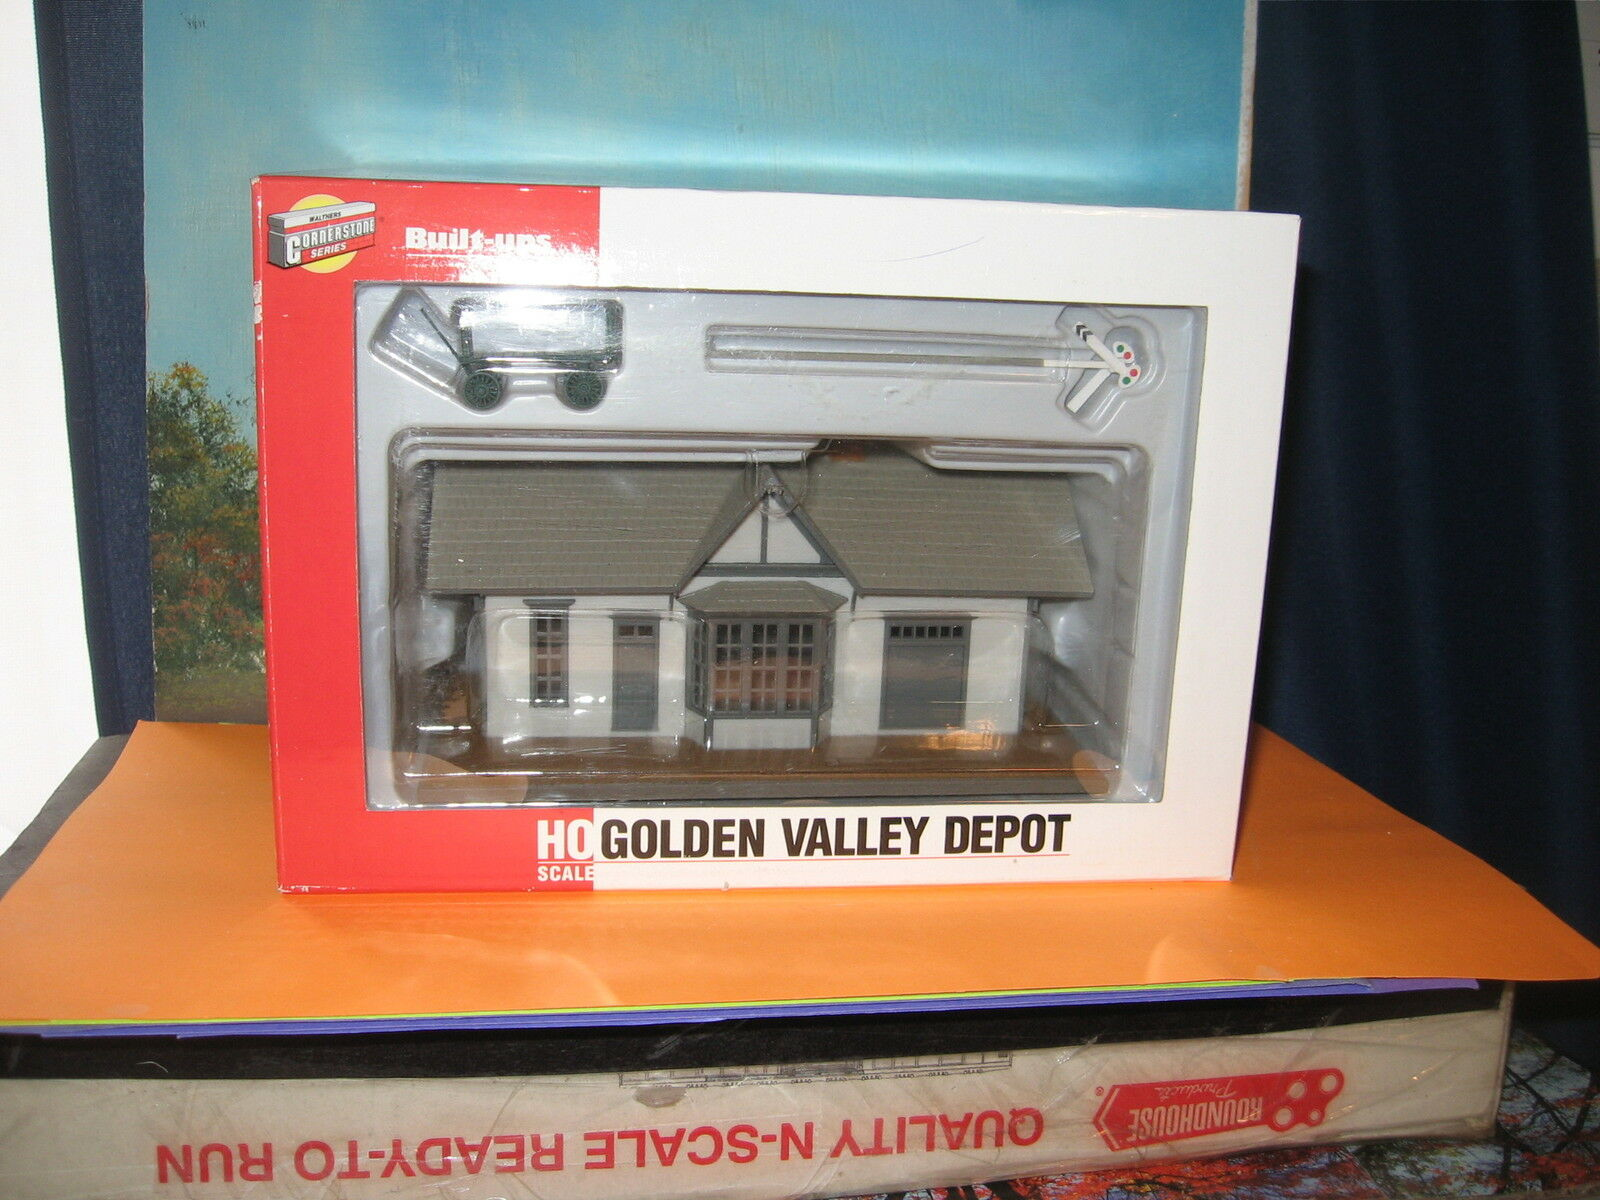 WALTHERS CORNERSTONE SERIES HO SCALE #933-2806 HO GOLDEN VALLEY DEPOT